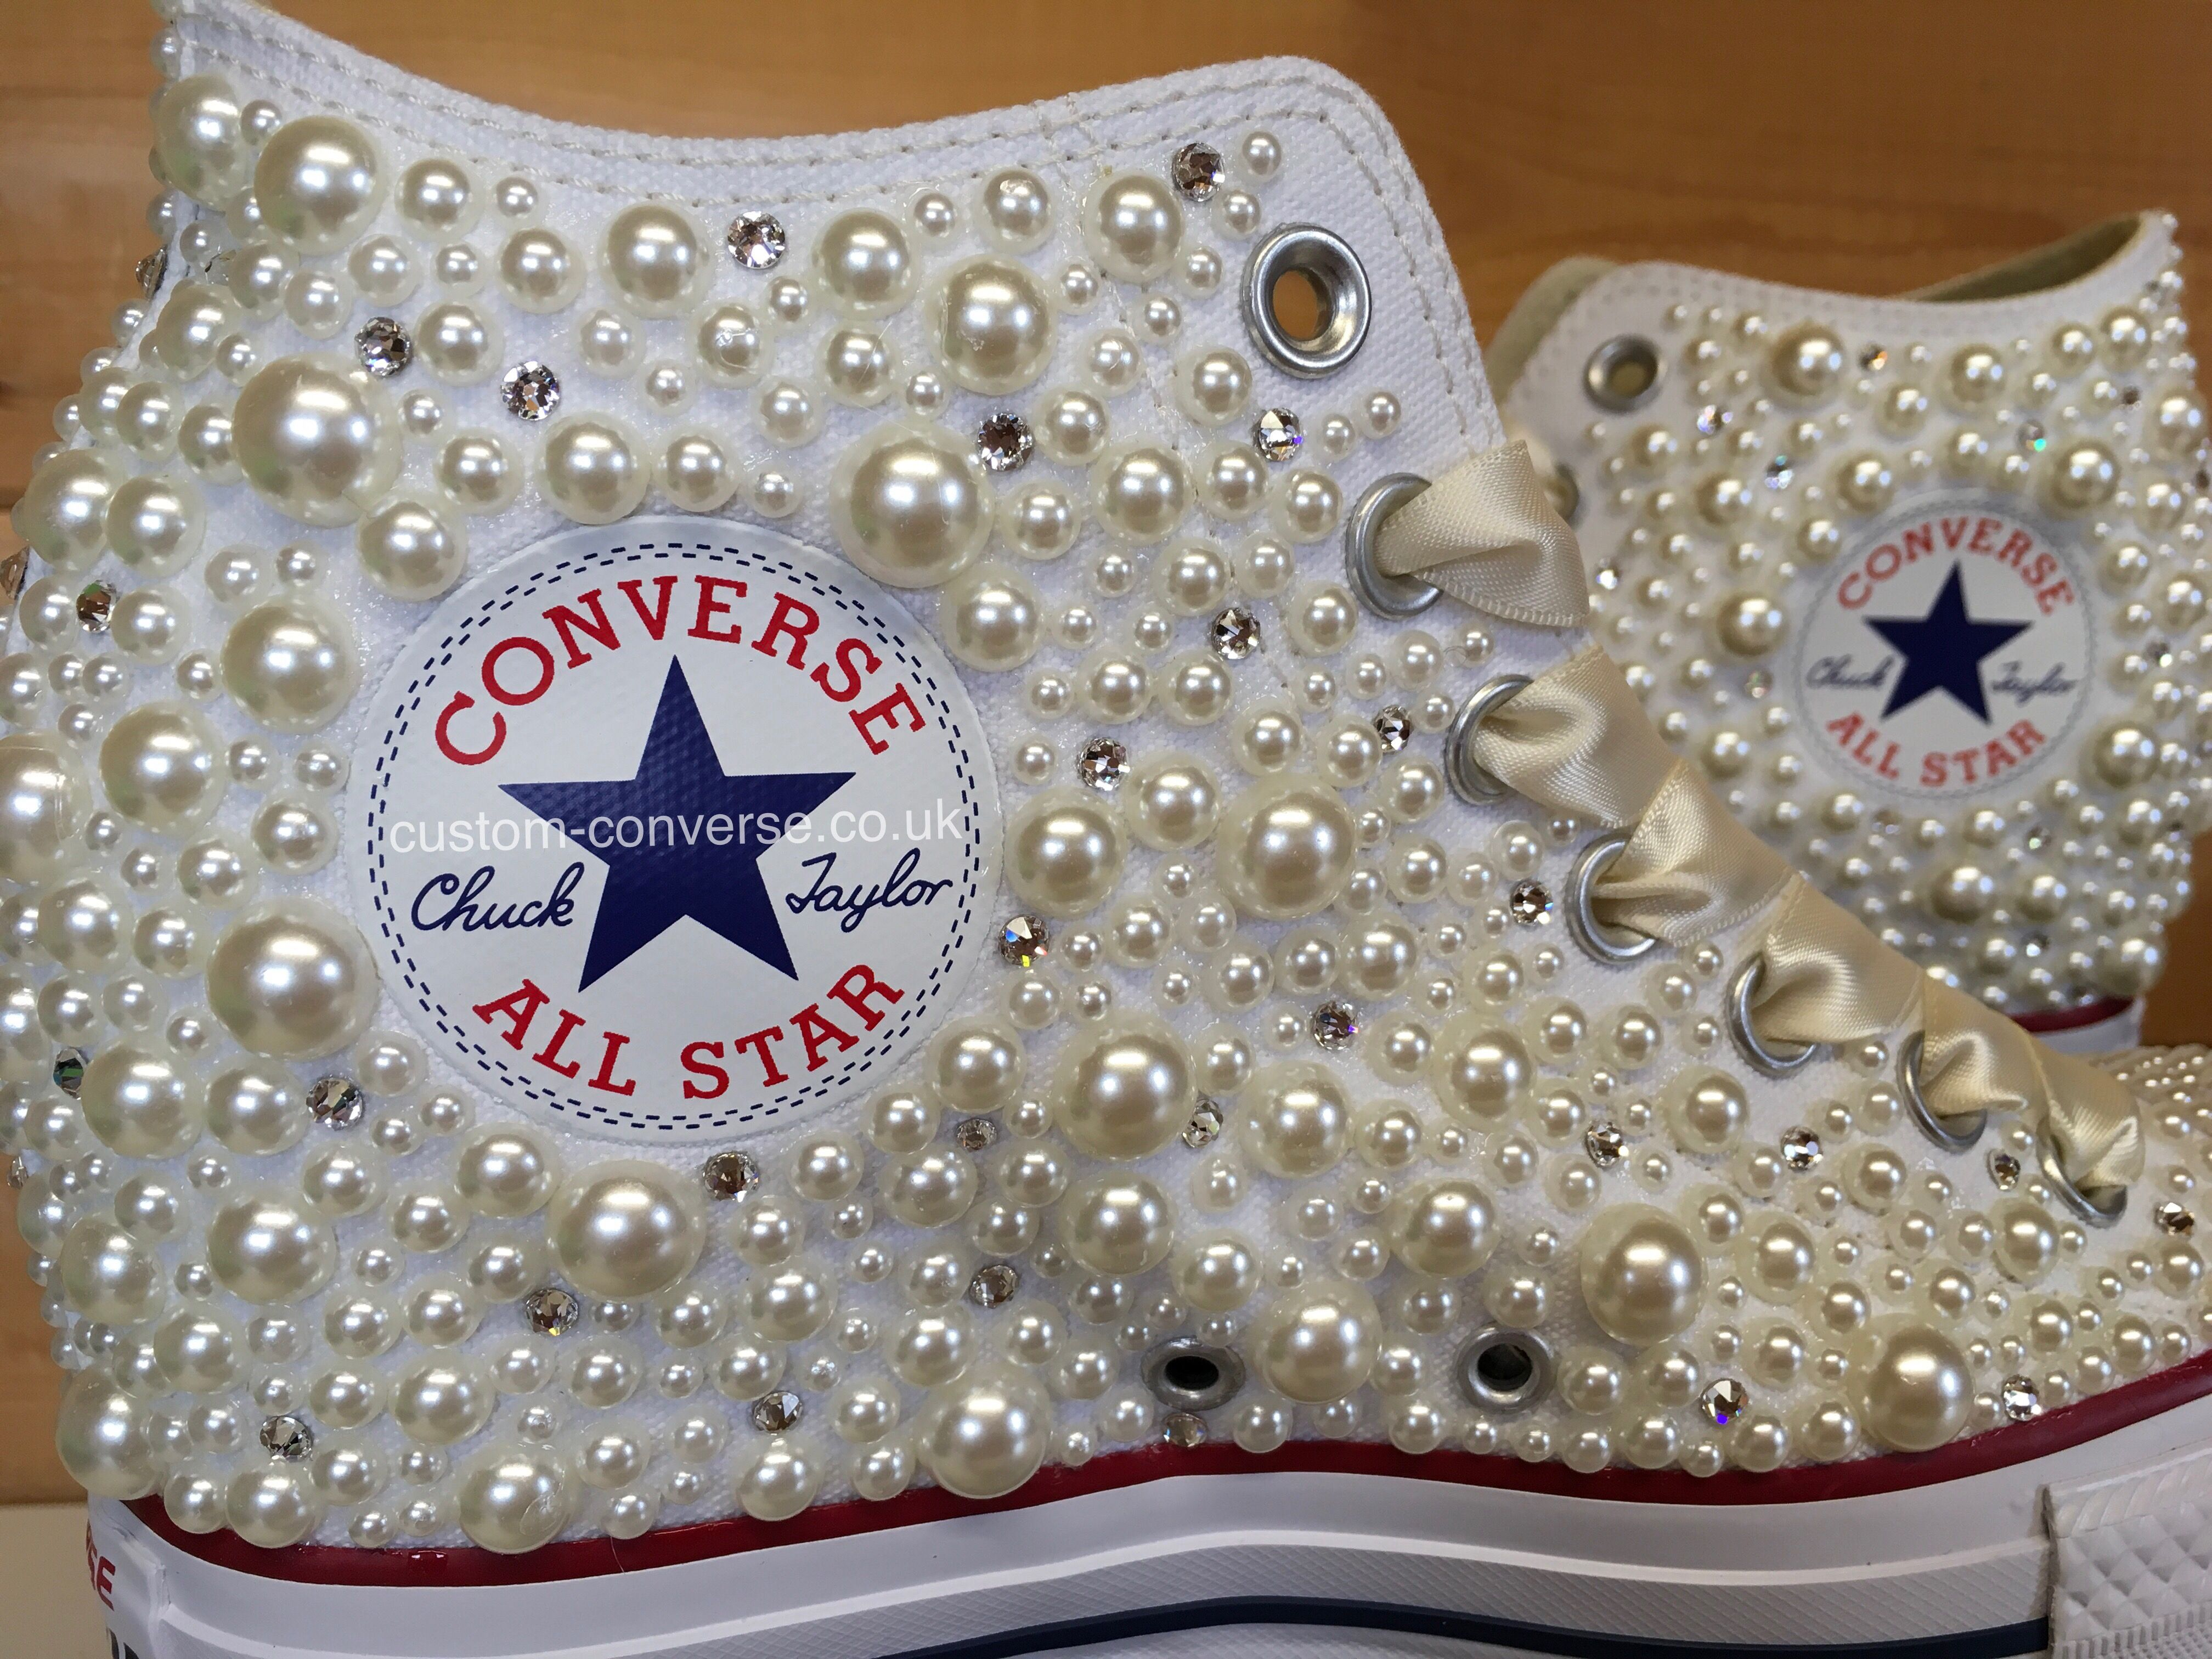 Mixed Size Pearl and Swarovski High Tops  wedding  weddingconverse  converse   chucks  allstars  kicks  weddingshoes  bride  brideconverse  pearl   swarovski ... fcfc3d969